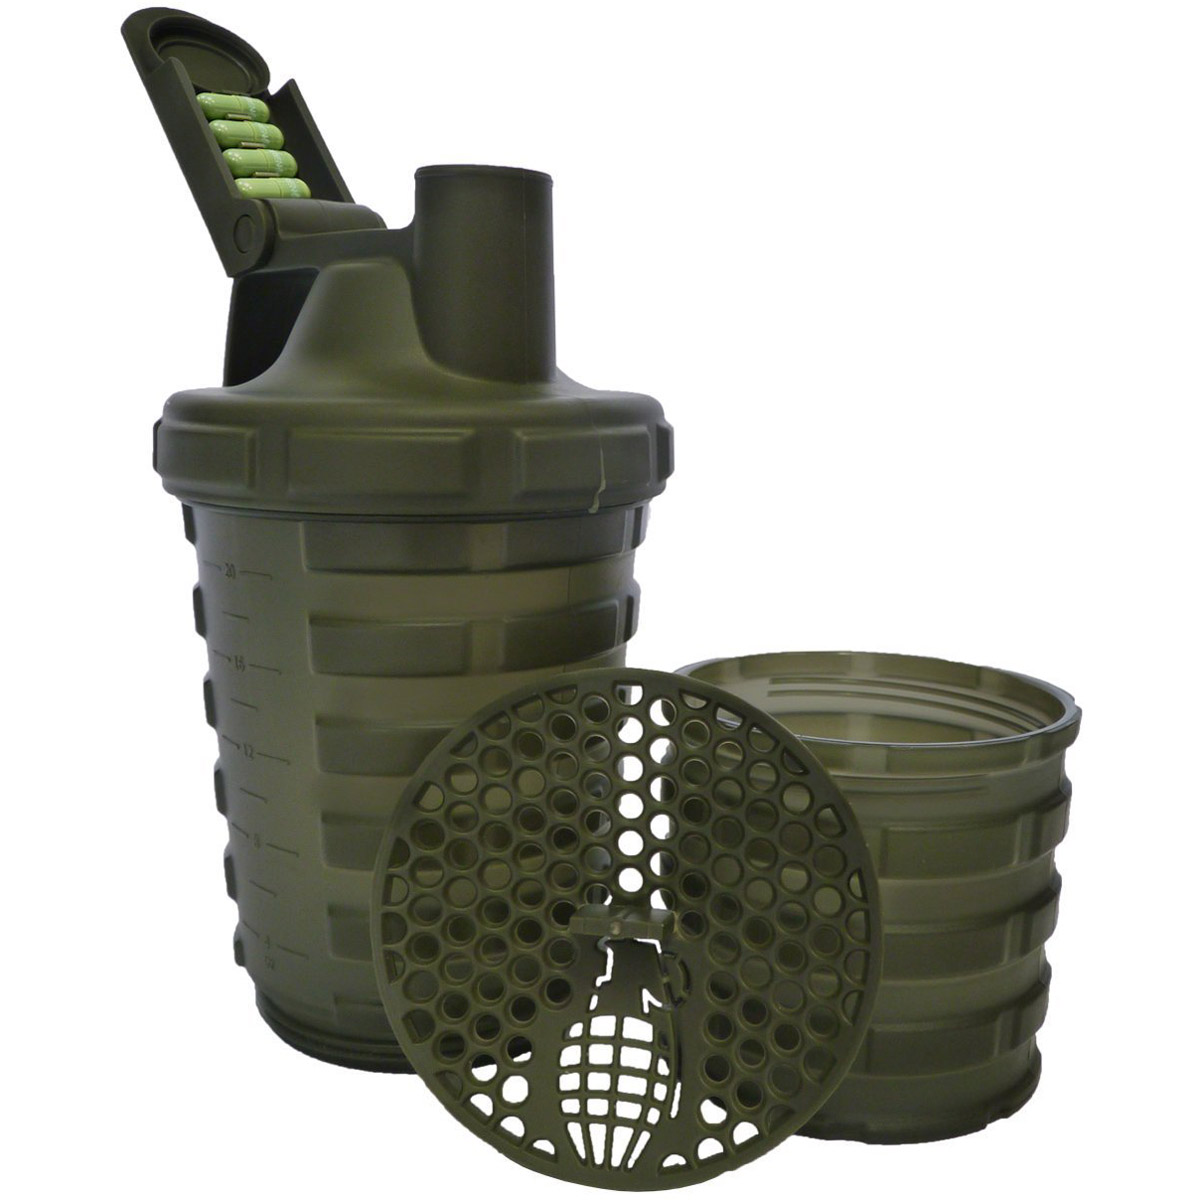 thumbnail 7 - Grenade-20-oz-Shaker-Blender-Mixer-Bottle-with-600ml-Protein-Cup-Compartment